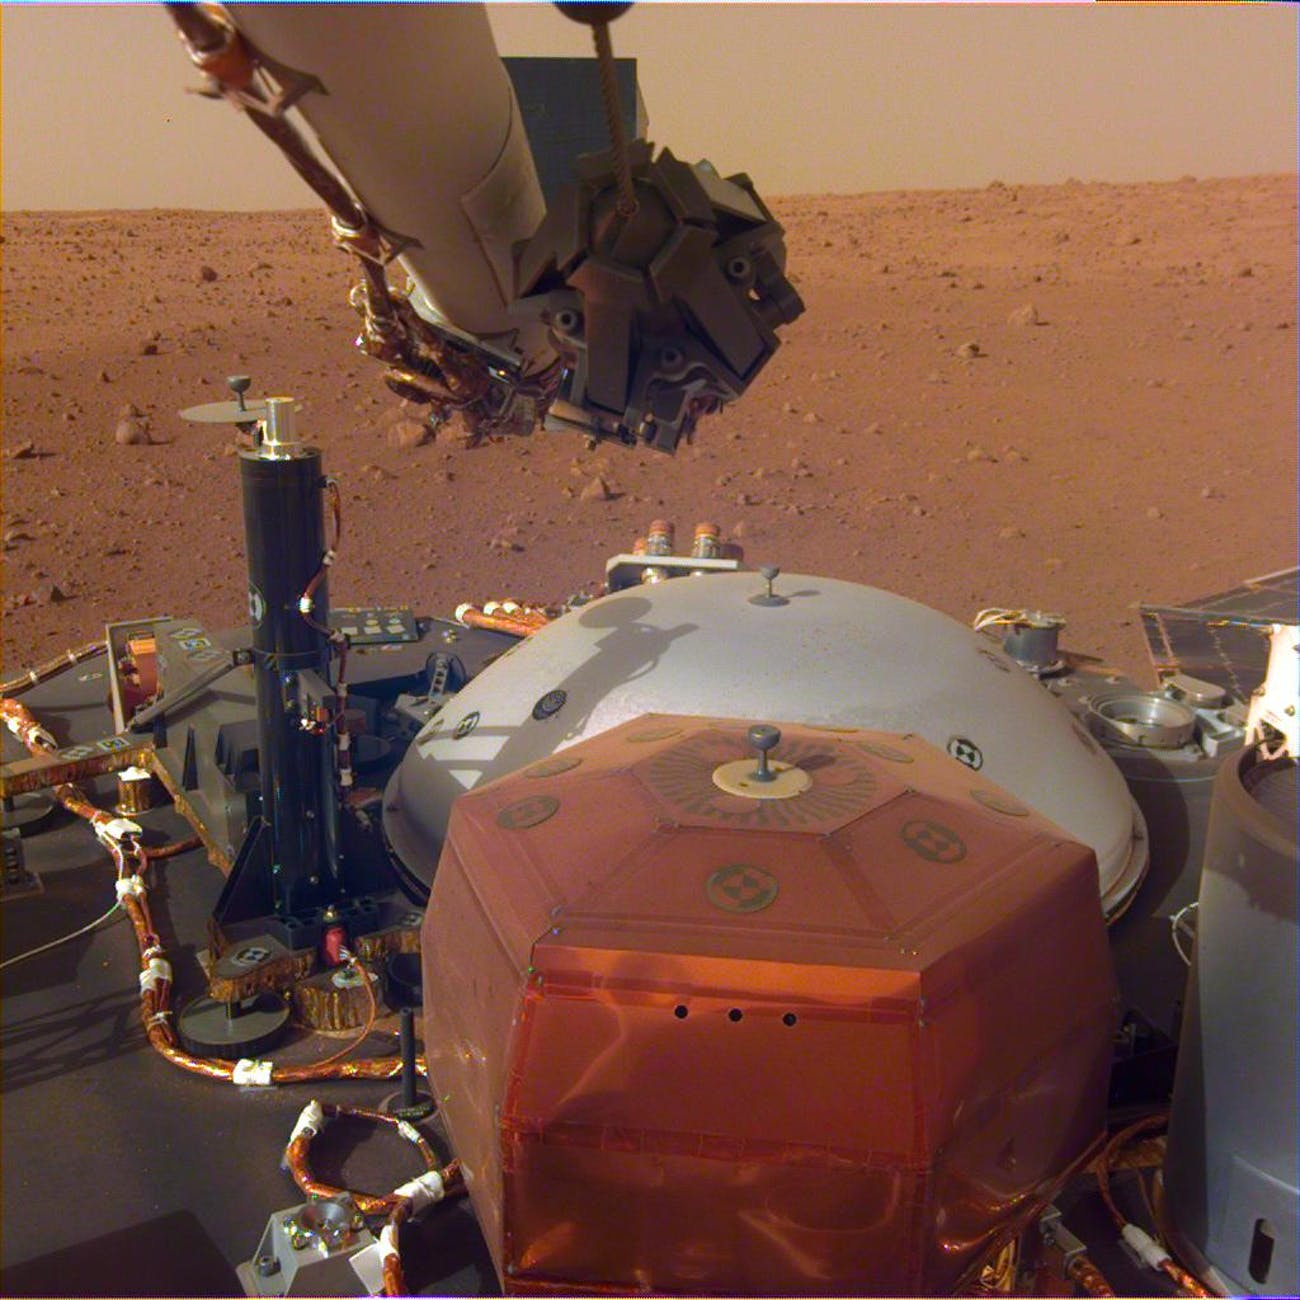 This image from InSight's robotic-arm mounted Instrument Deployment Camera shows the instruments on the spacecraft's deck, with the Martian surface of Elysium Planitia in the background.